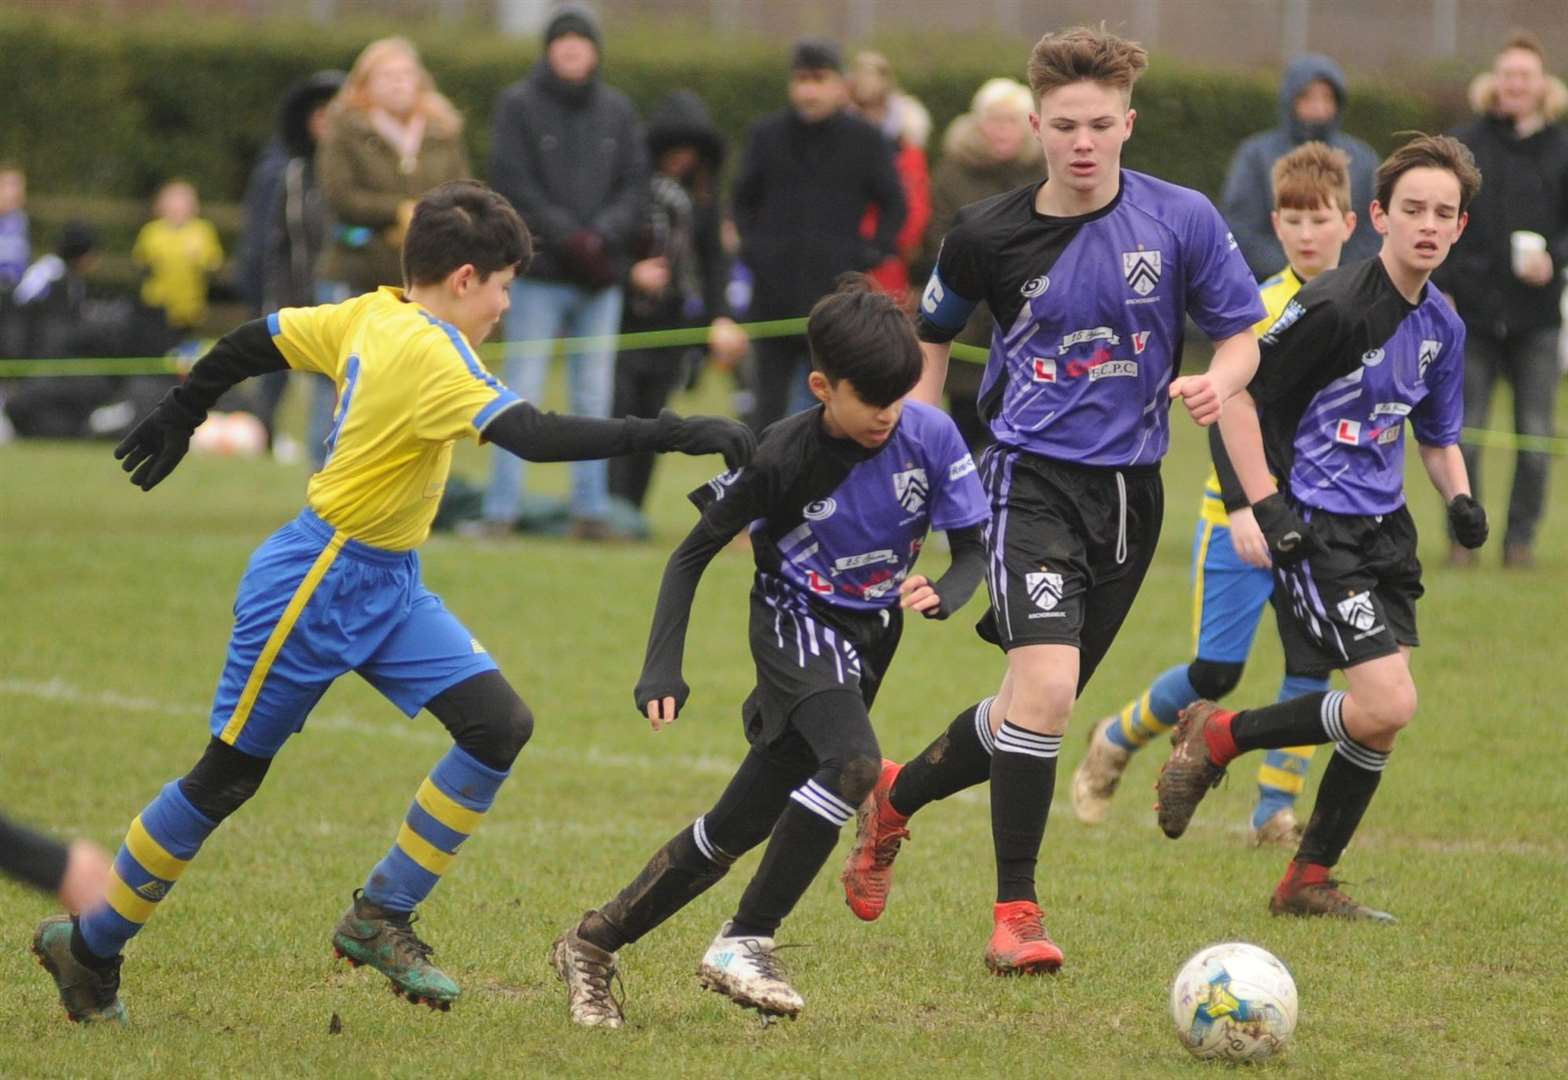 Under-13 Division 2 action between Anchorians Jaguars and Strood 87 Picture: Steve Crispe